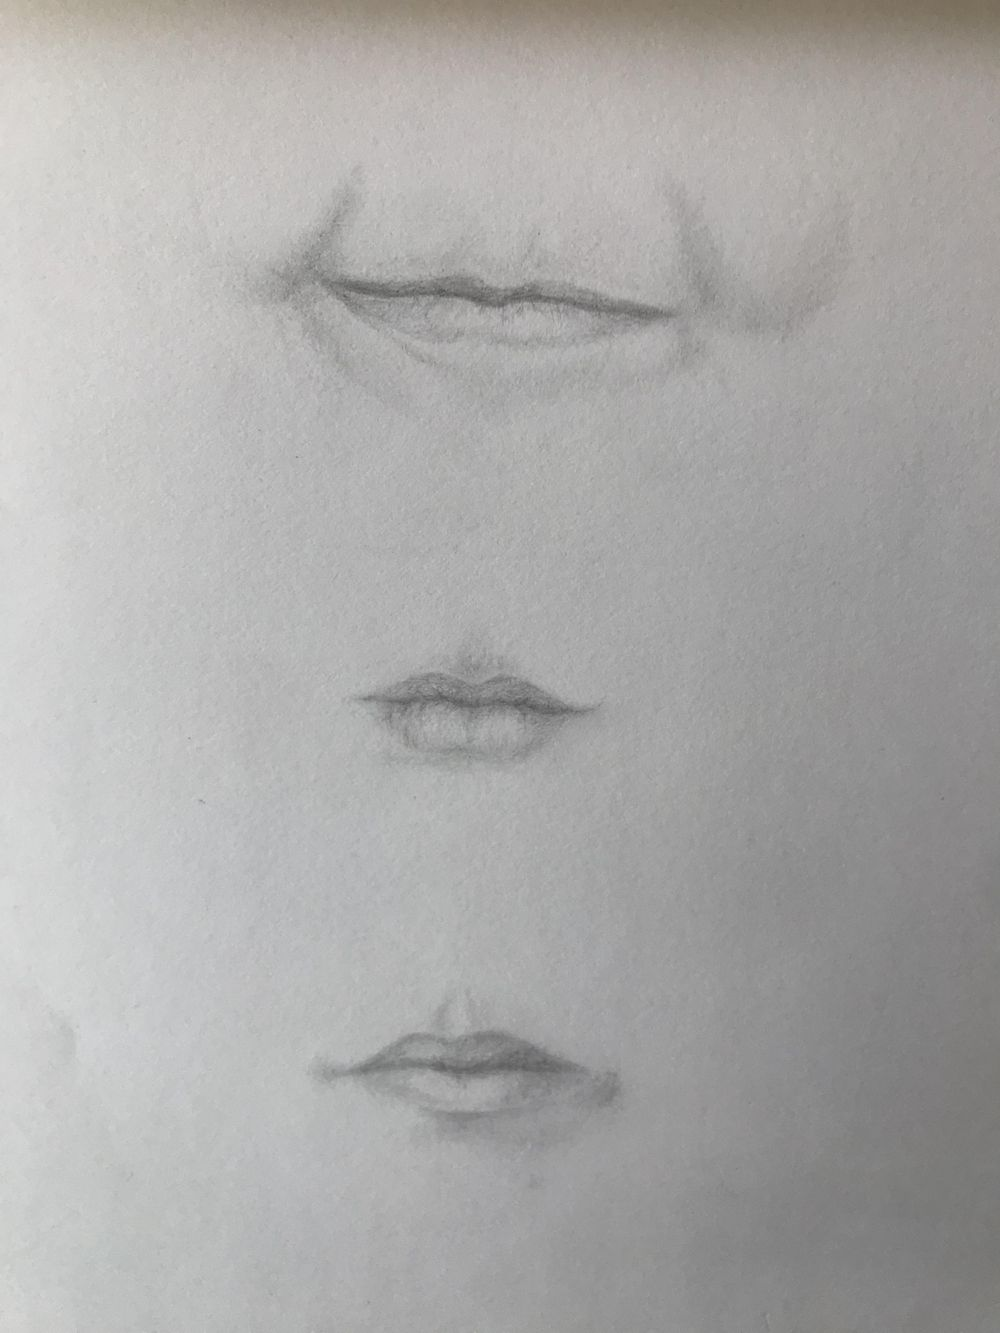 eyes, noses and lips - image 2 - student project